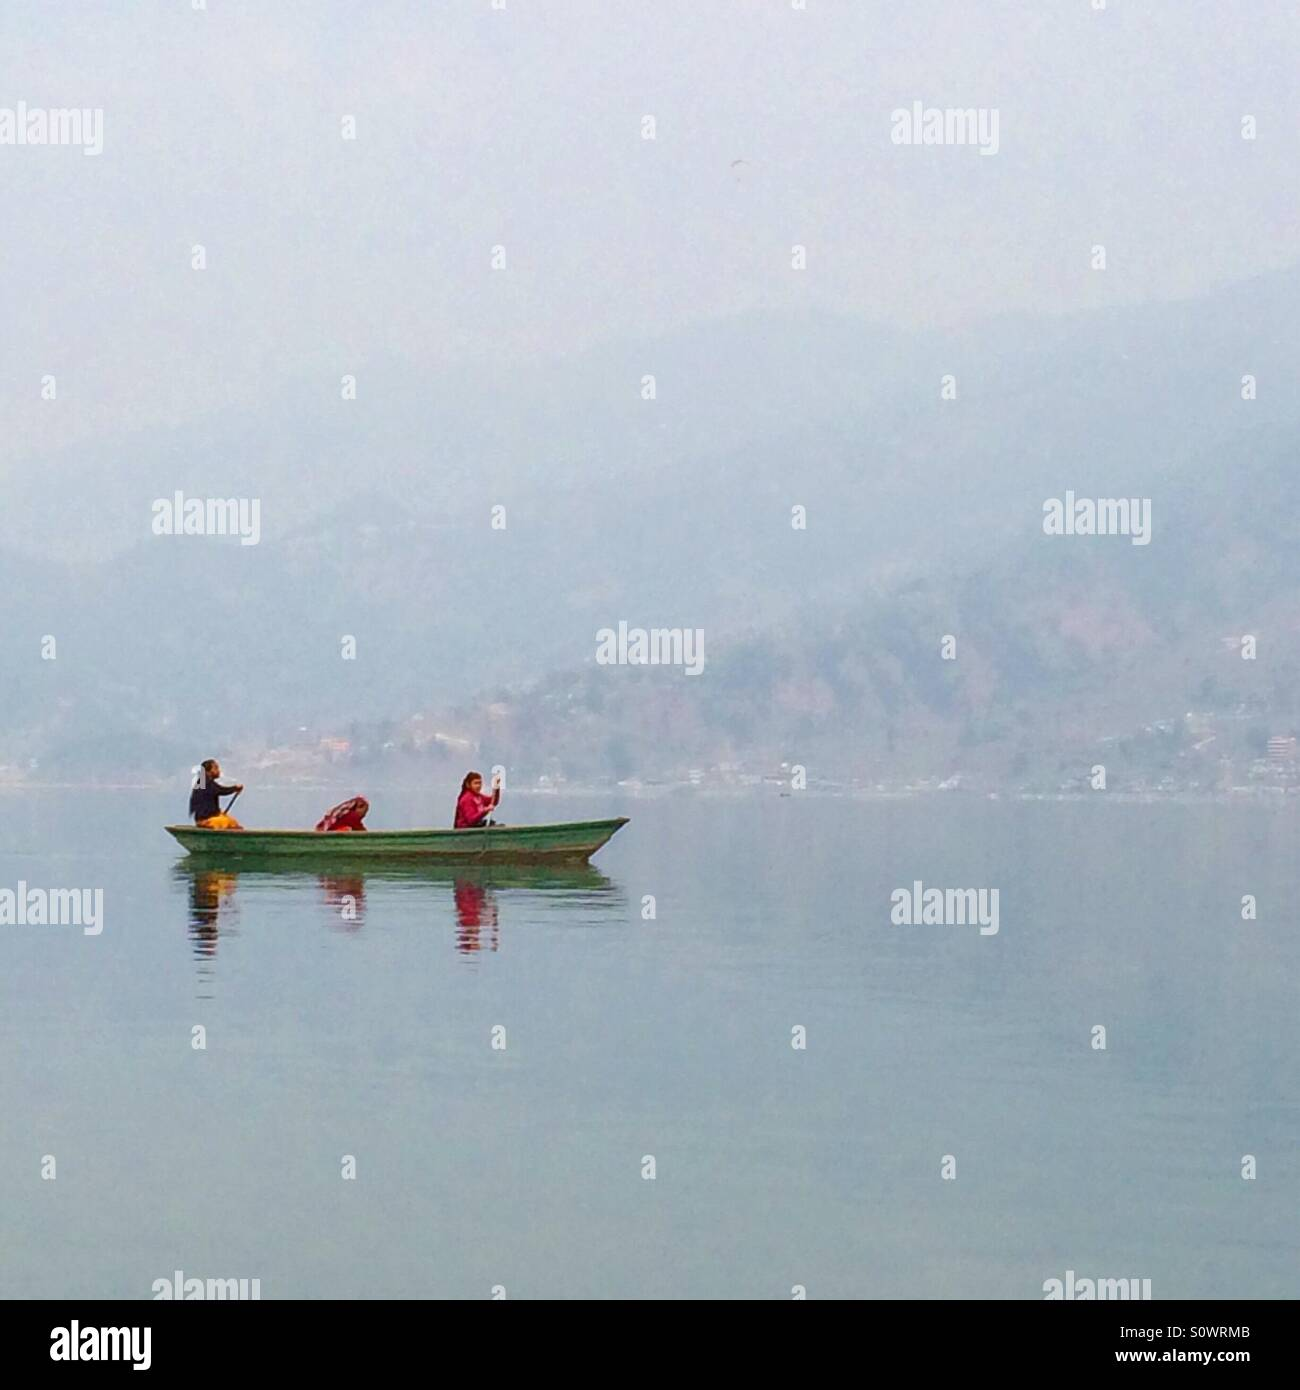 Women in the boat Fawa Lake Pokhara Nepal - Stock Image